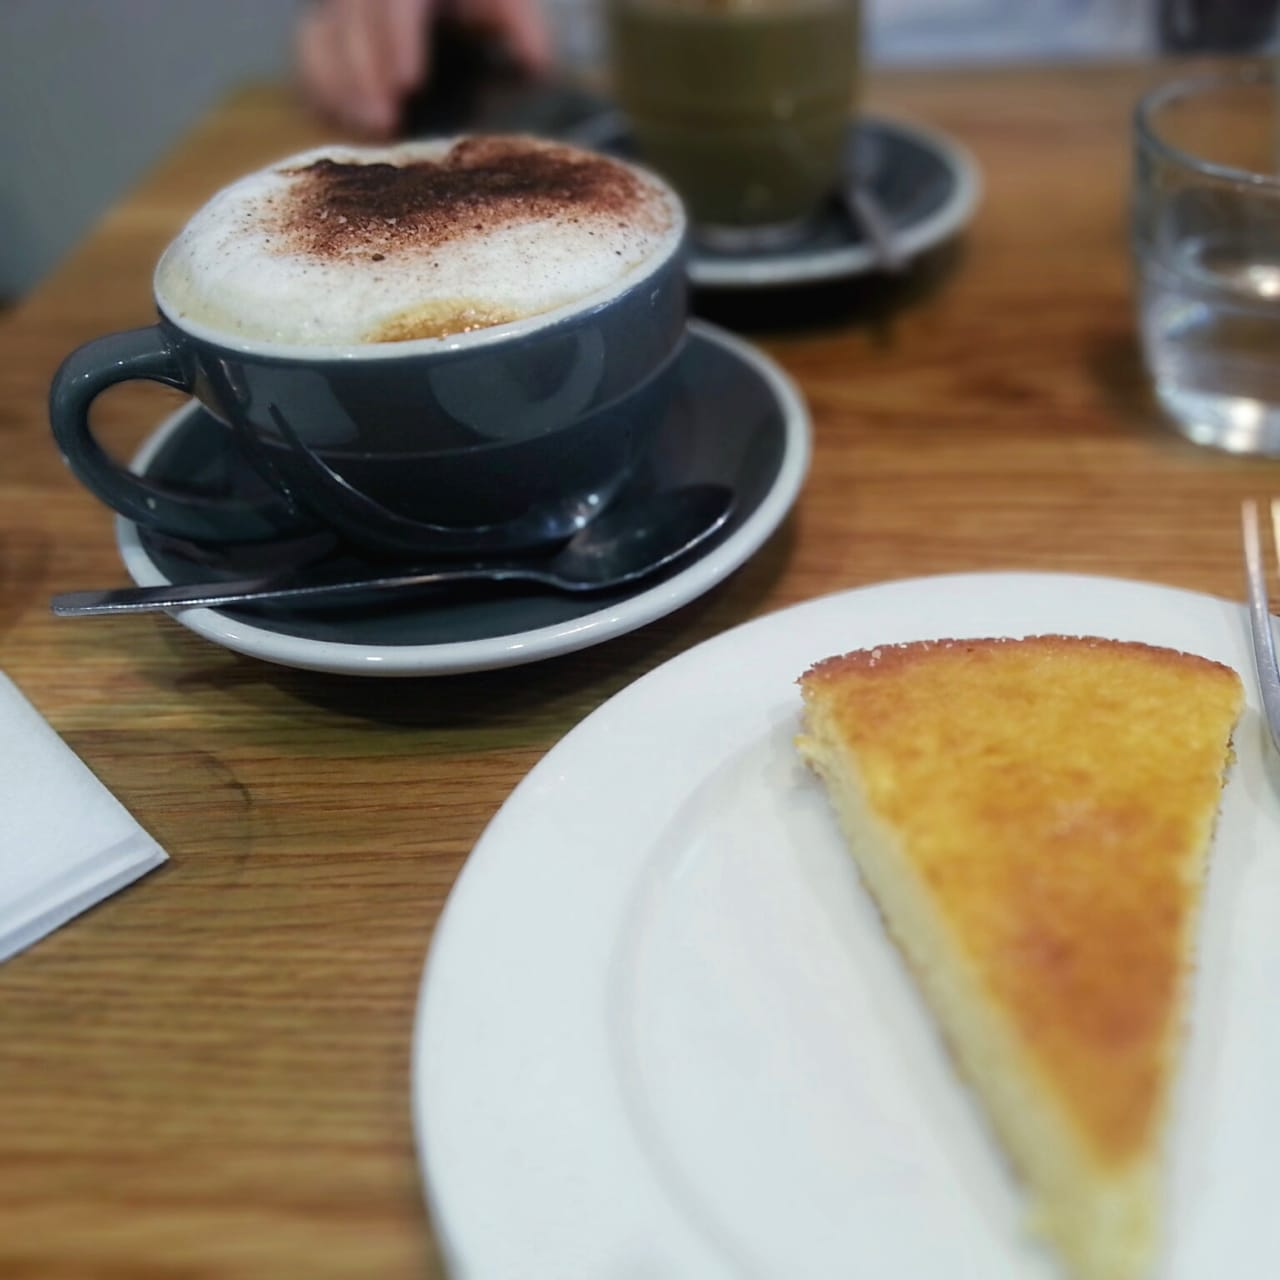 Coffee and cake can be had at the many cafés of Keswick